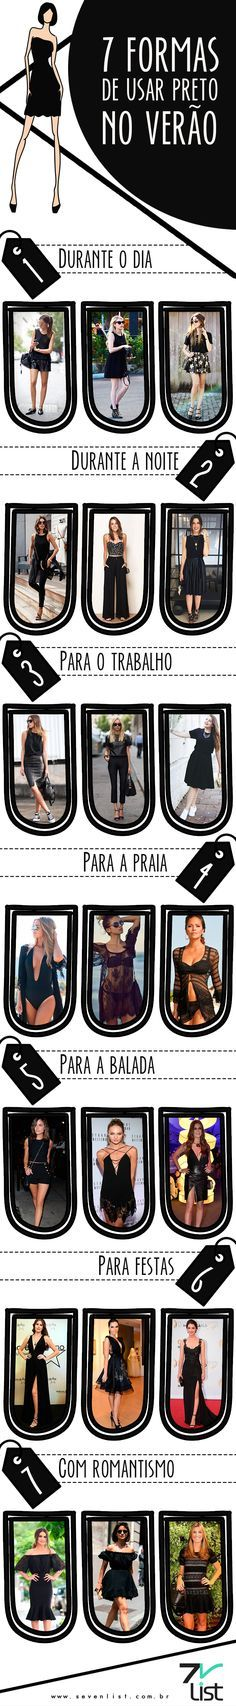 #Summer #Black                                                                                                                                                                                 Mais  Preto no verão!